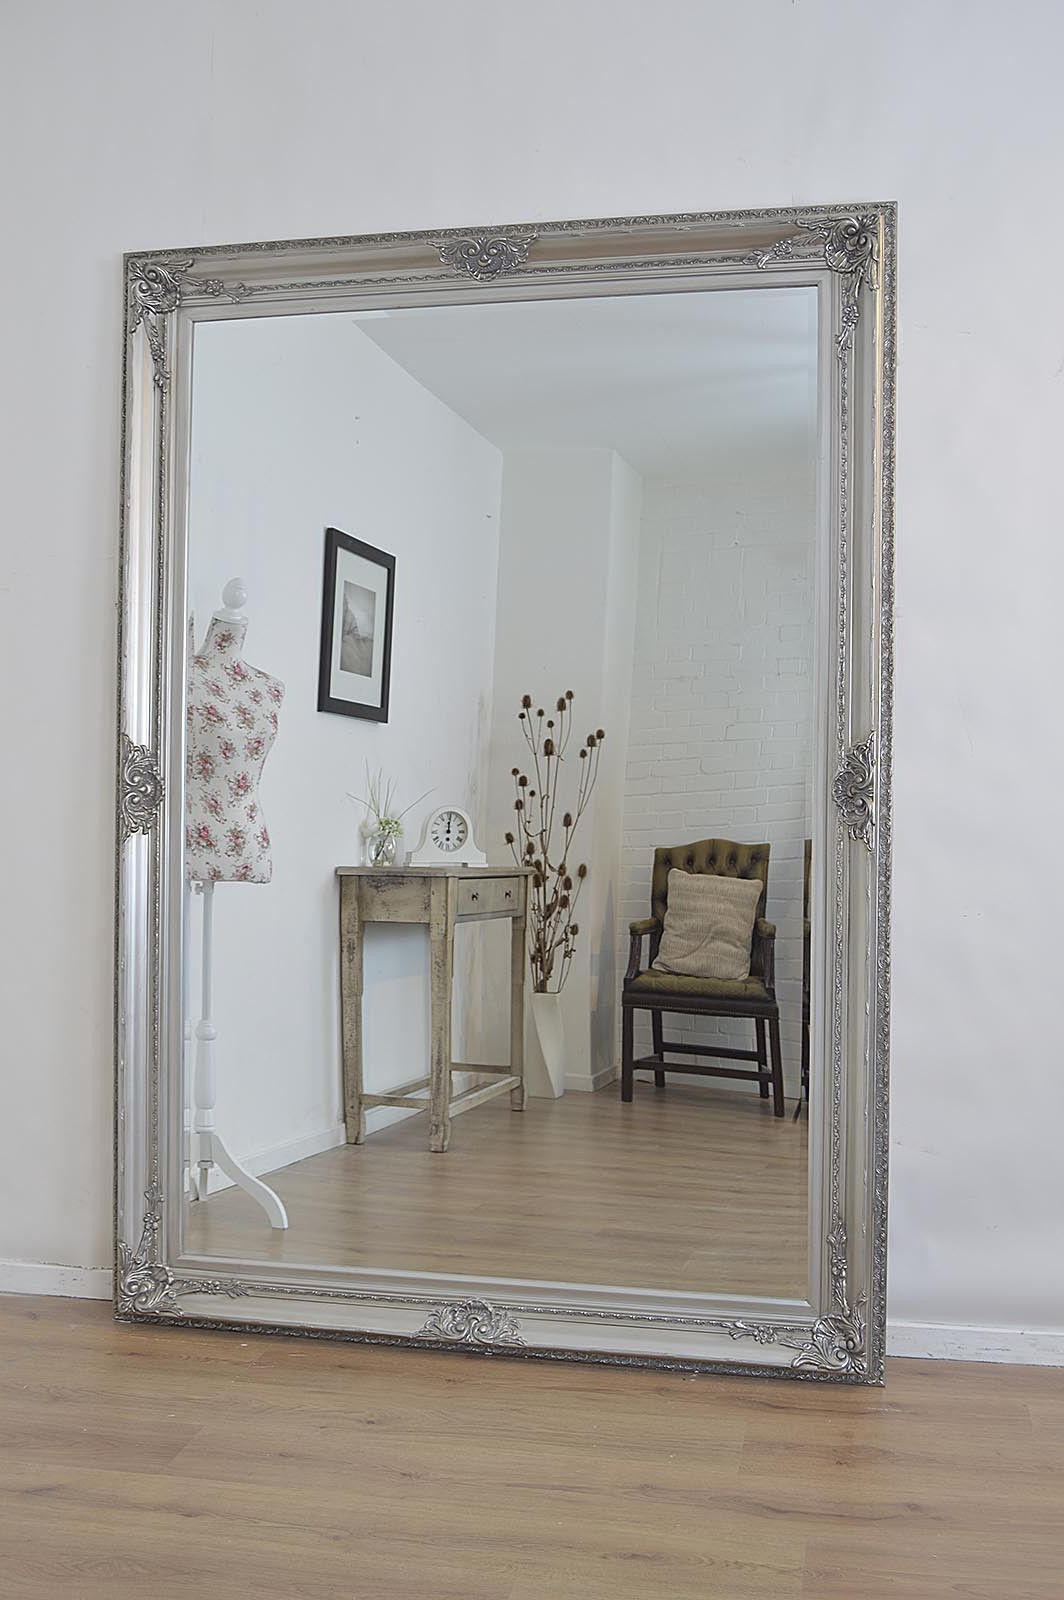 Decorative Large Wall Mirrors With Fashionable Diy Big Wall Mirrors (View 6 of 20)